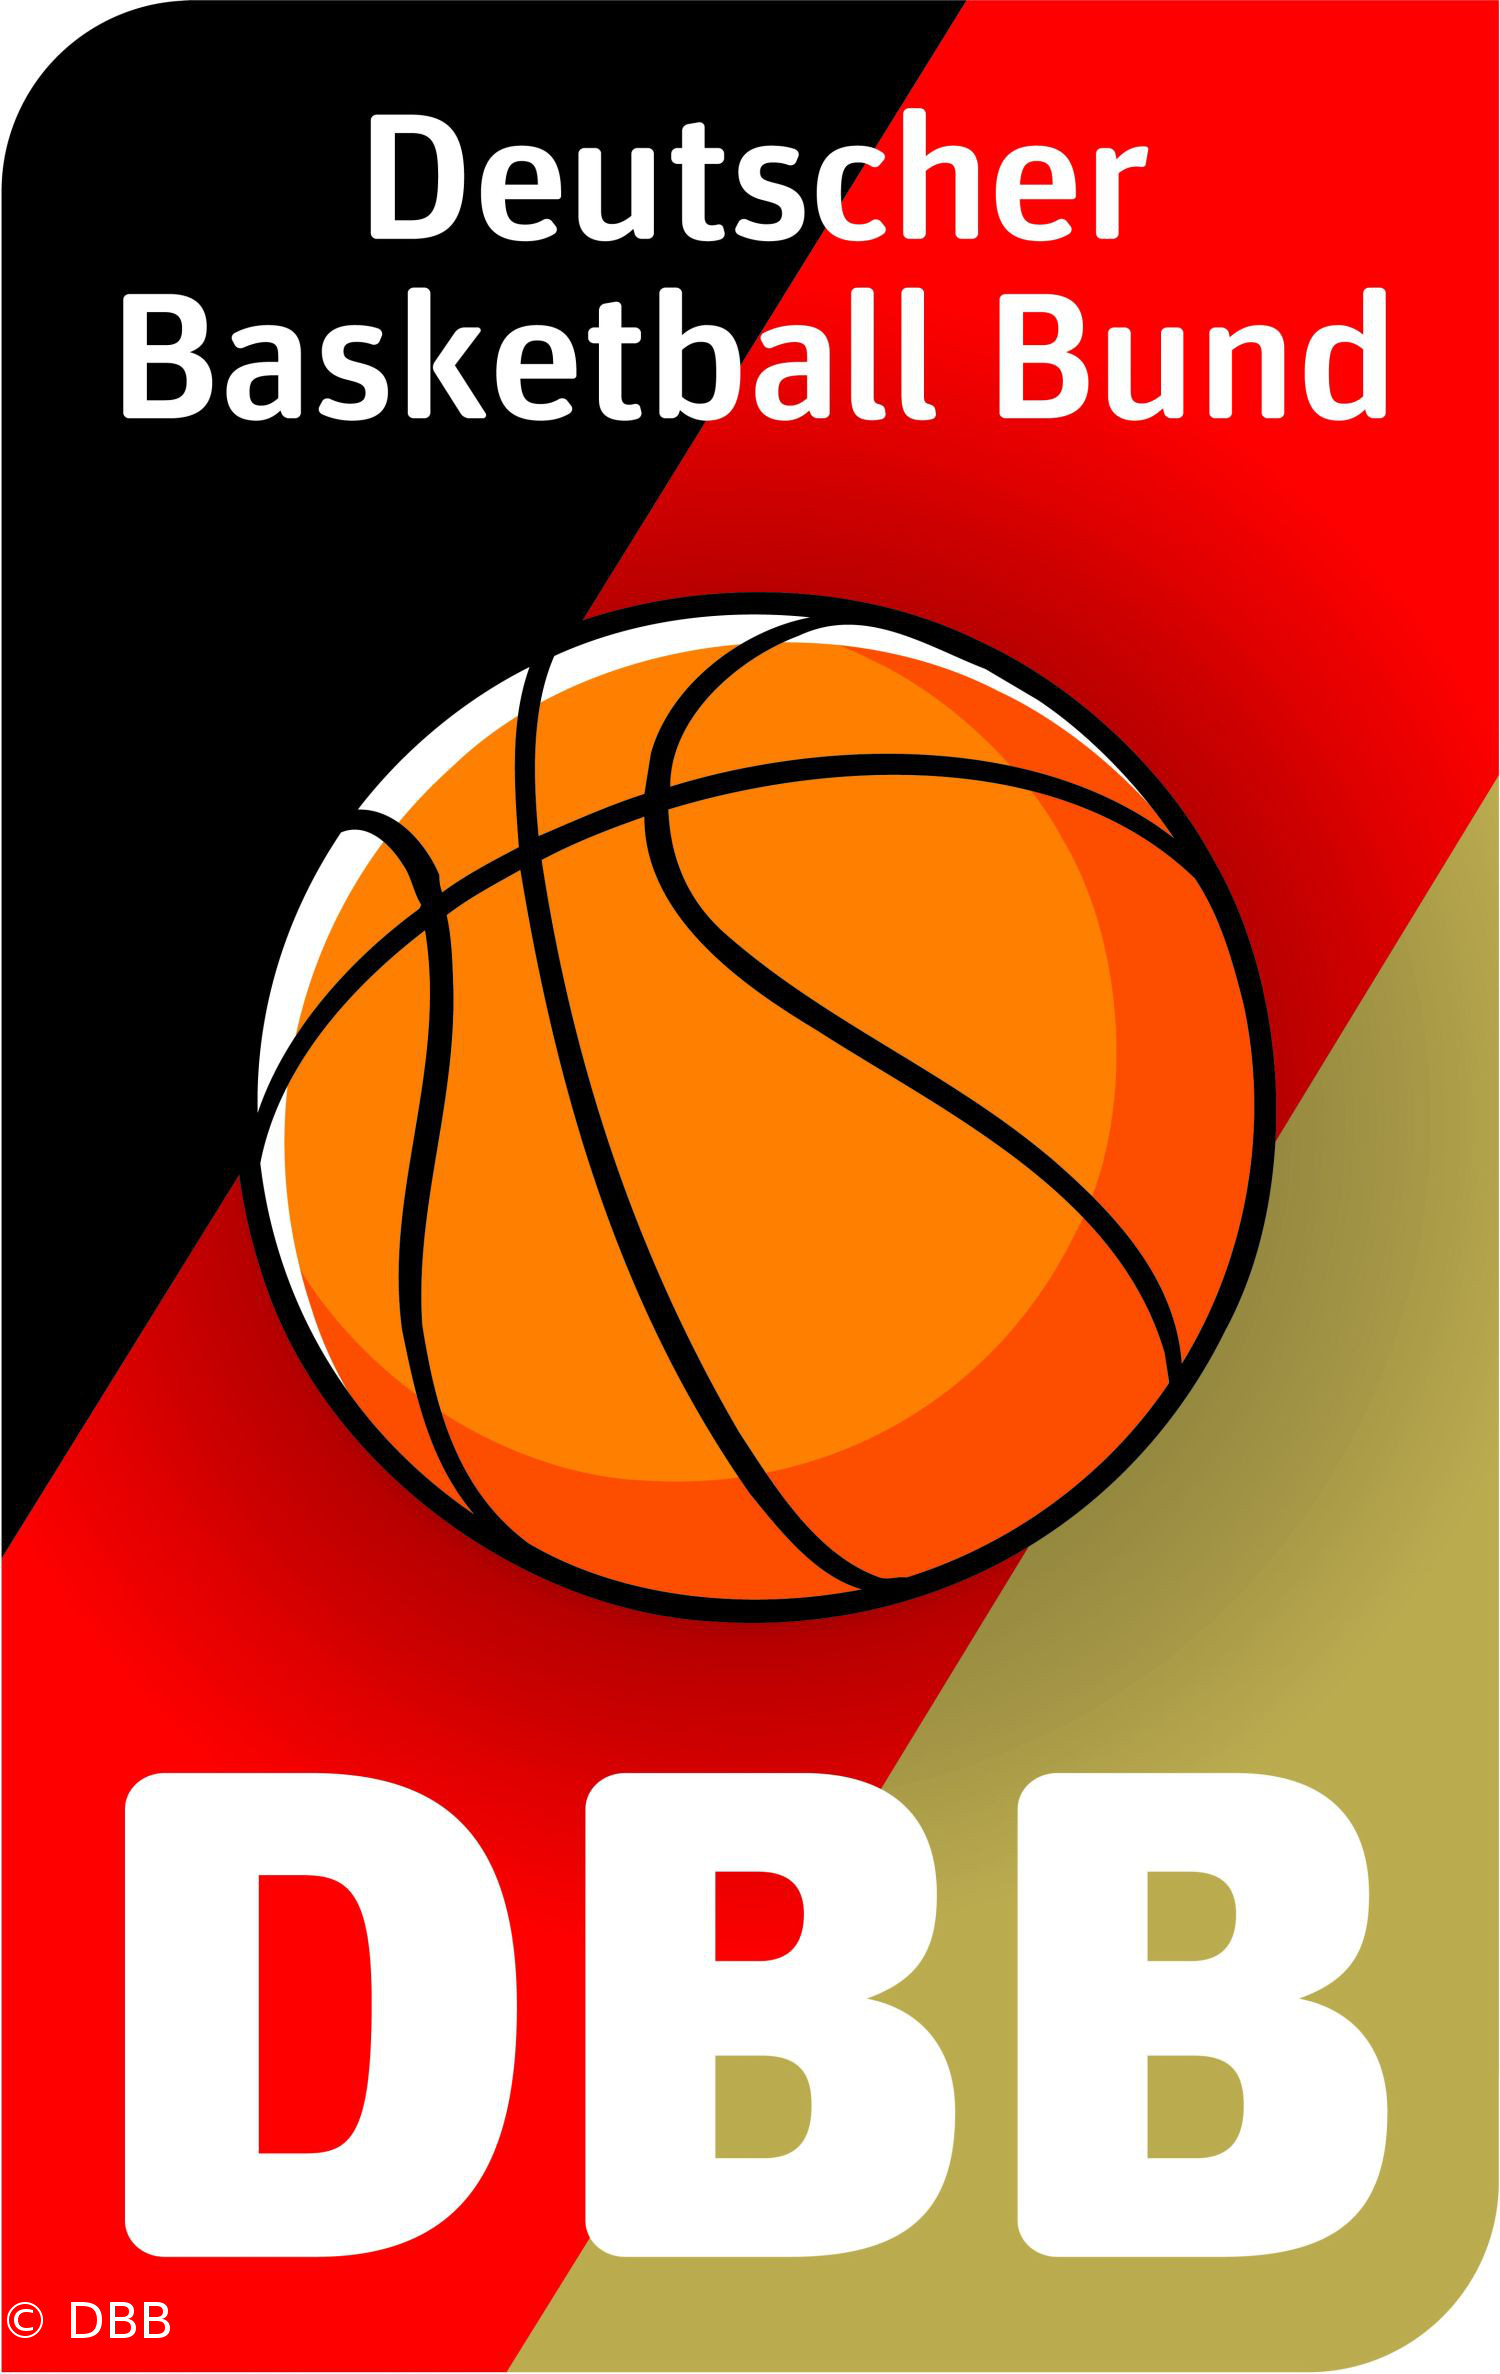 DBB nominiert A2-Nationalmannschaft